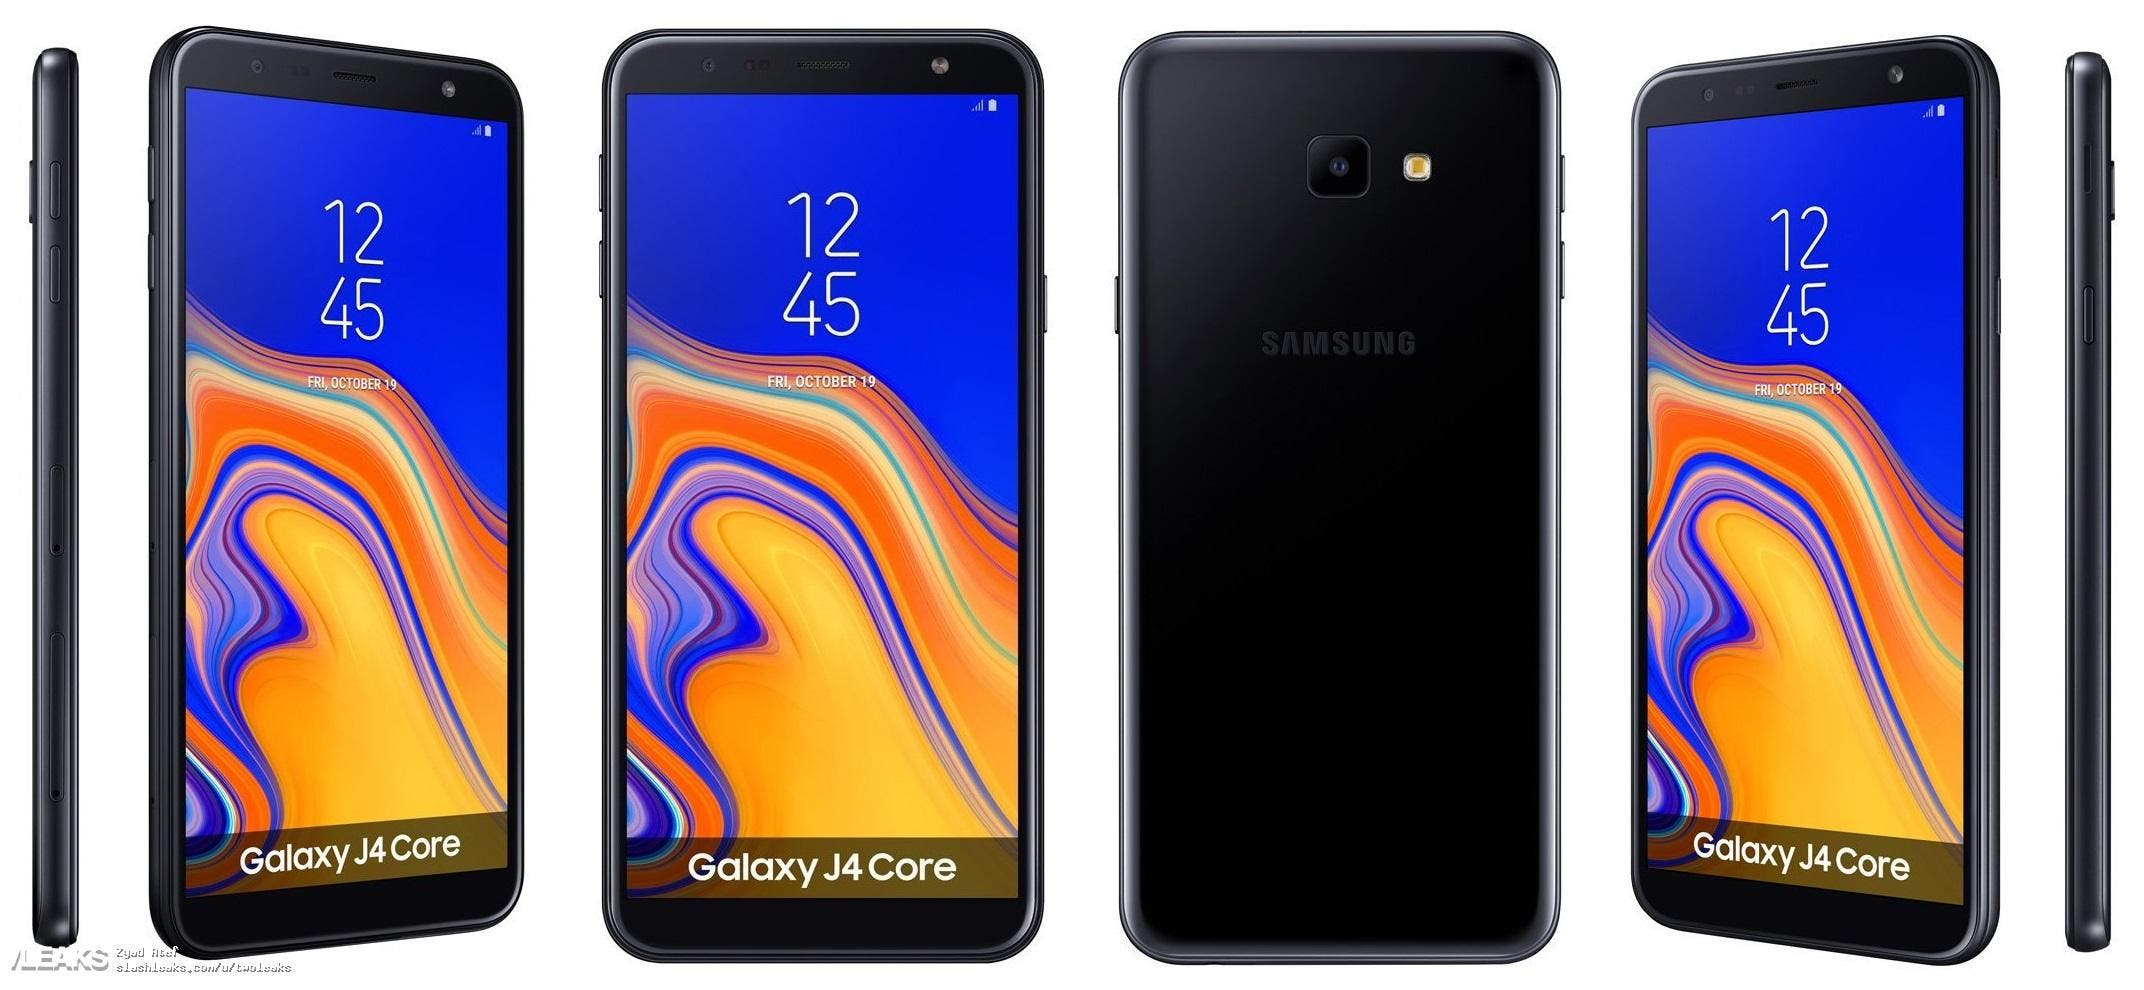 Samsung Galaxy J4 Core Android Go Phone Leaked Online